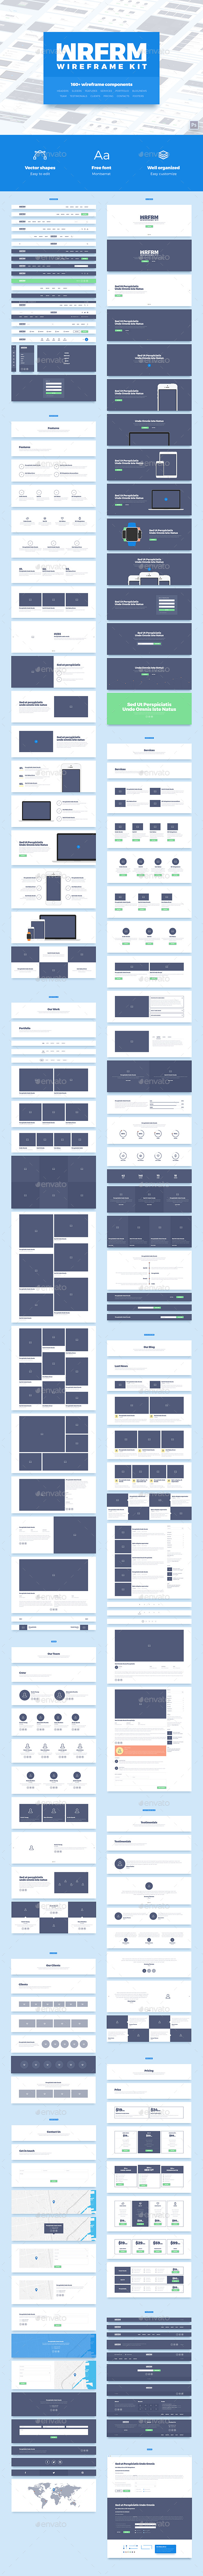 WRFRM – Wireframe Kit (User Interfaces)